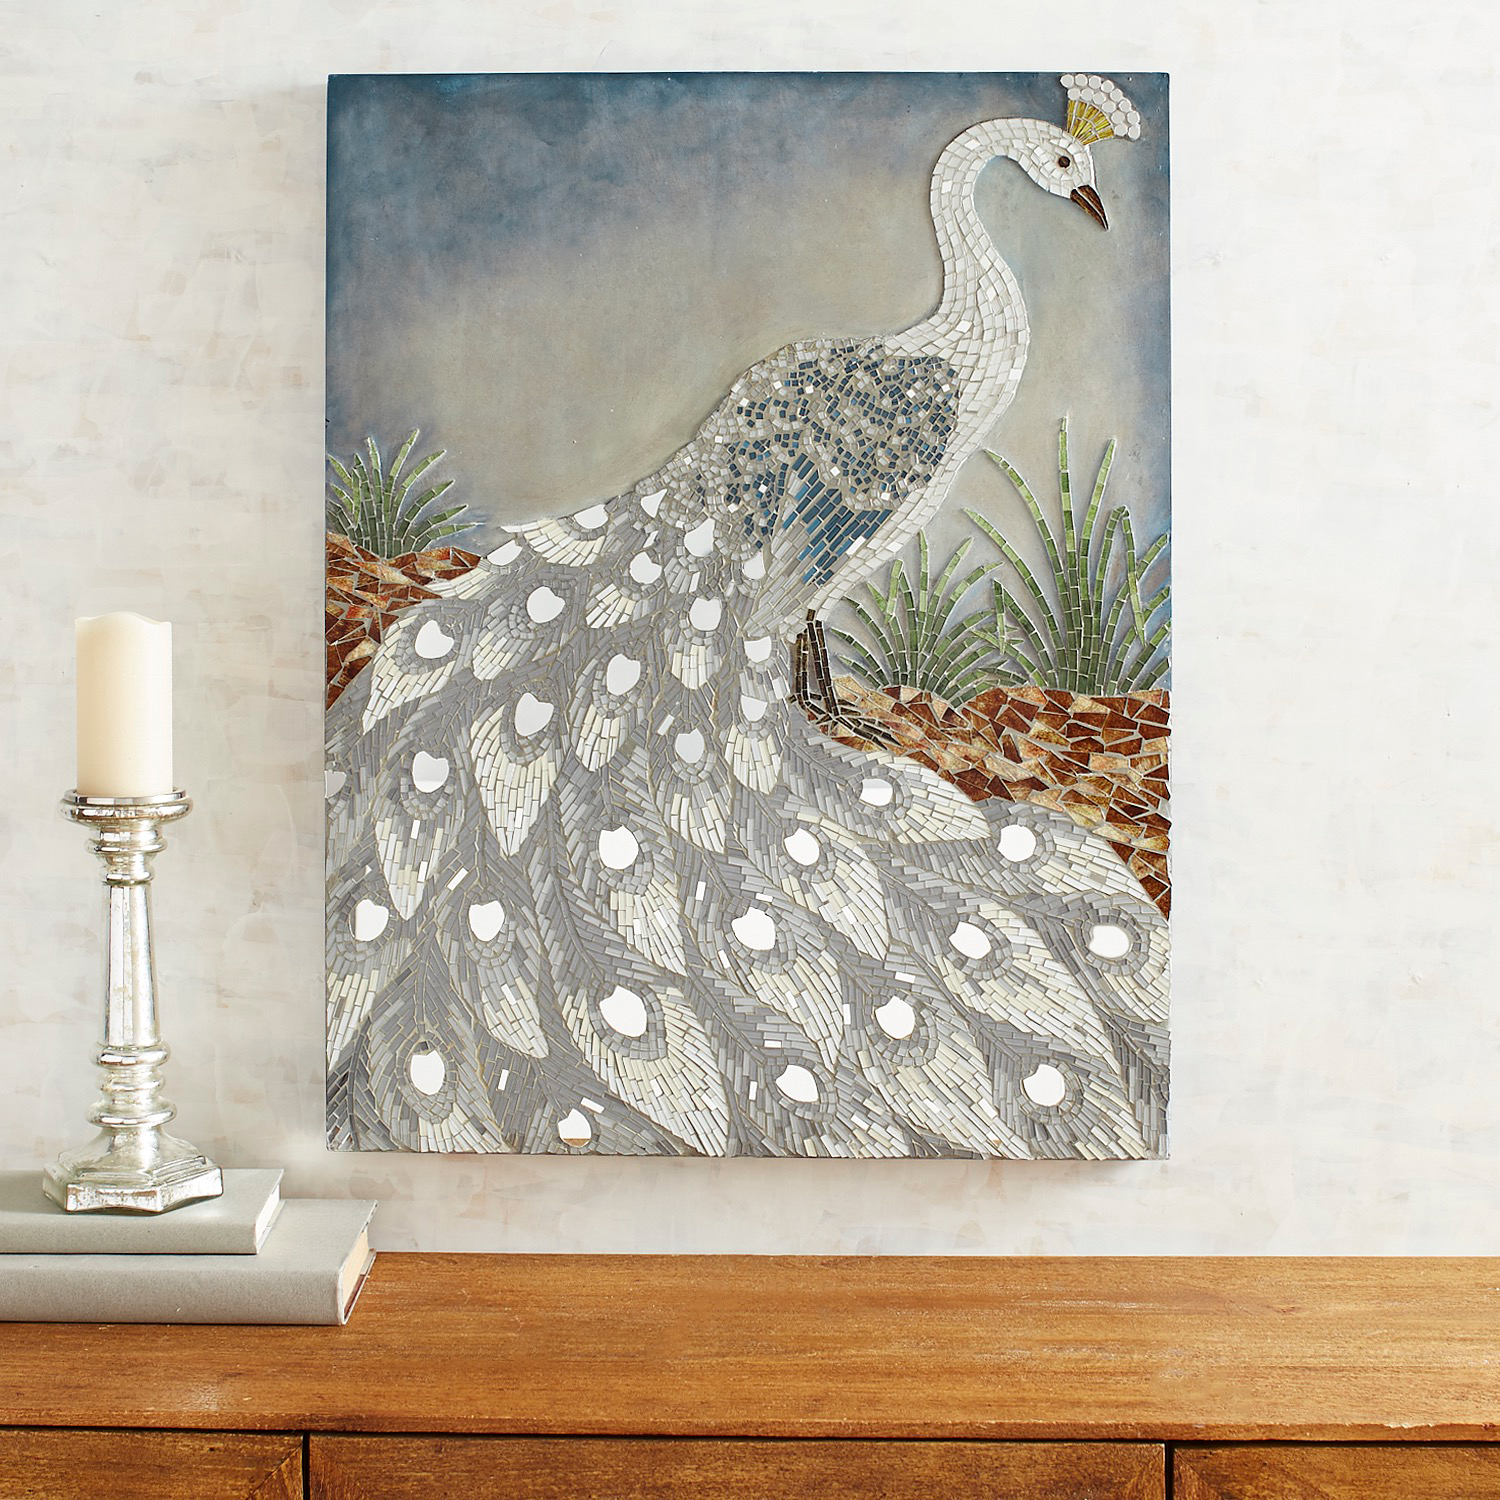 Mosaic Gray Peacock Wall Panel